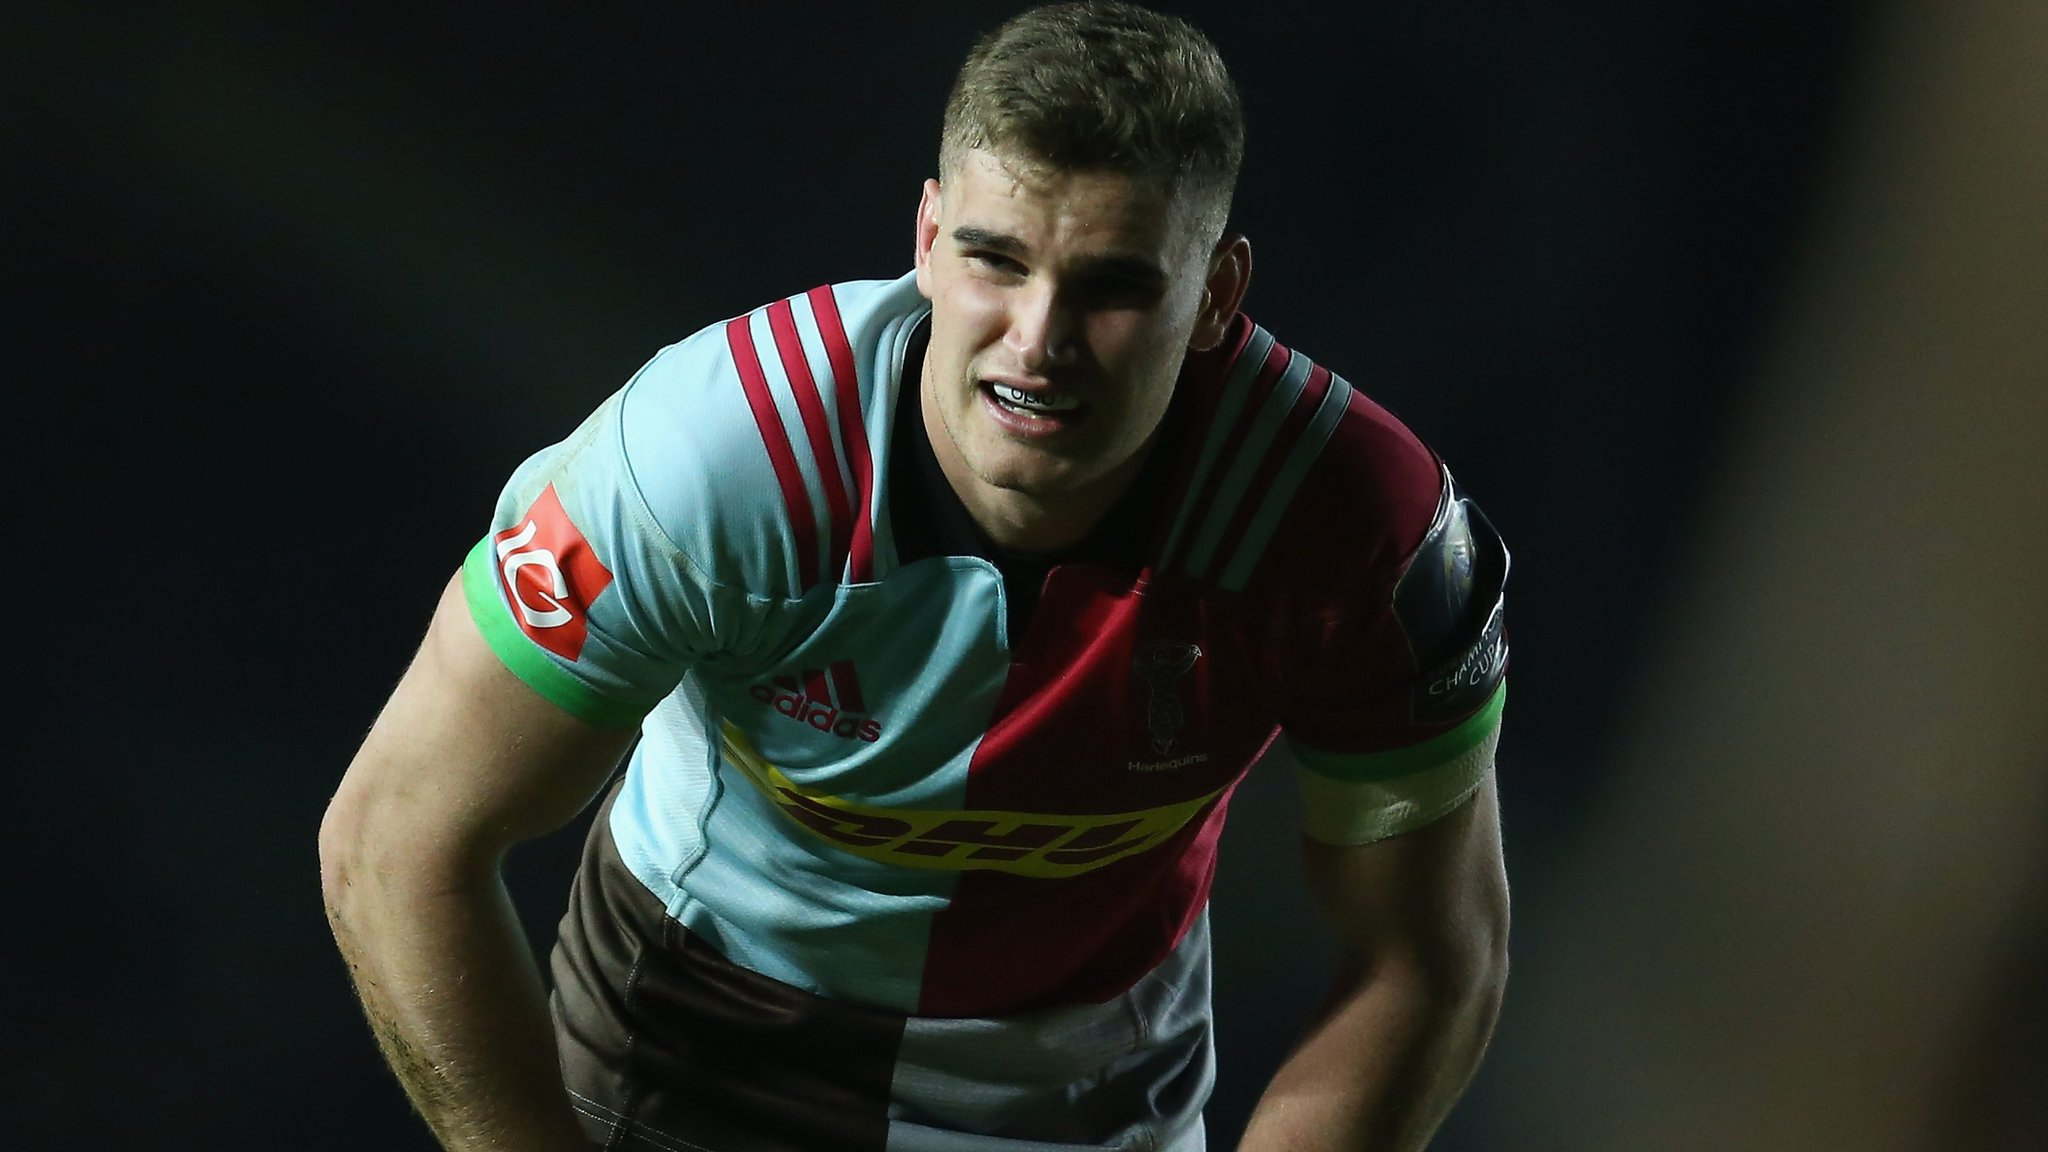 Quins' Lang aims to leave lasting impression on Scotland coach